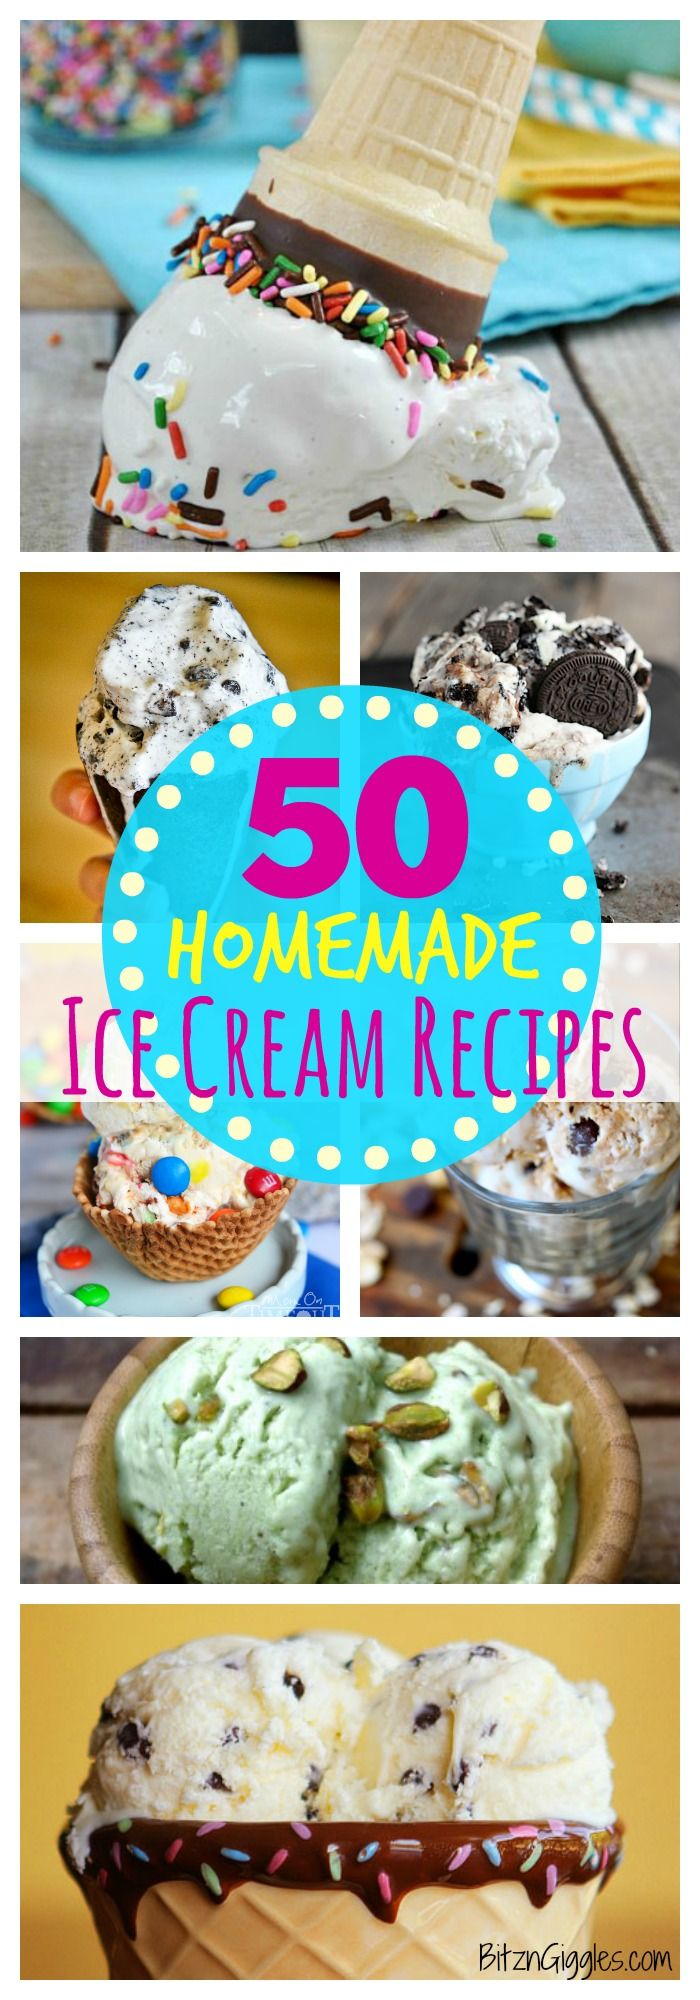 50 Homemade Ice Cream Recipes ~ No machine or churning needed! #icecream #nomachine #homemade